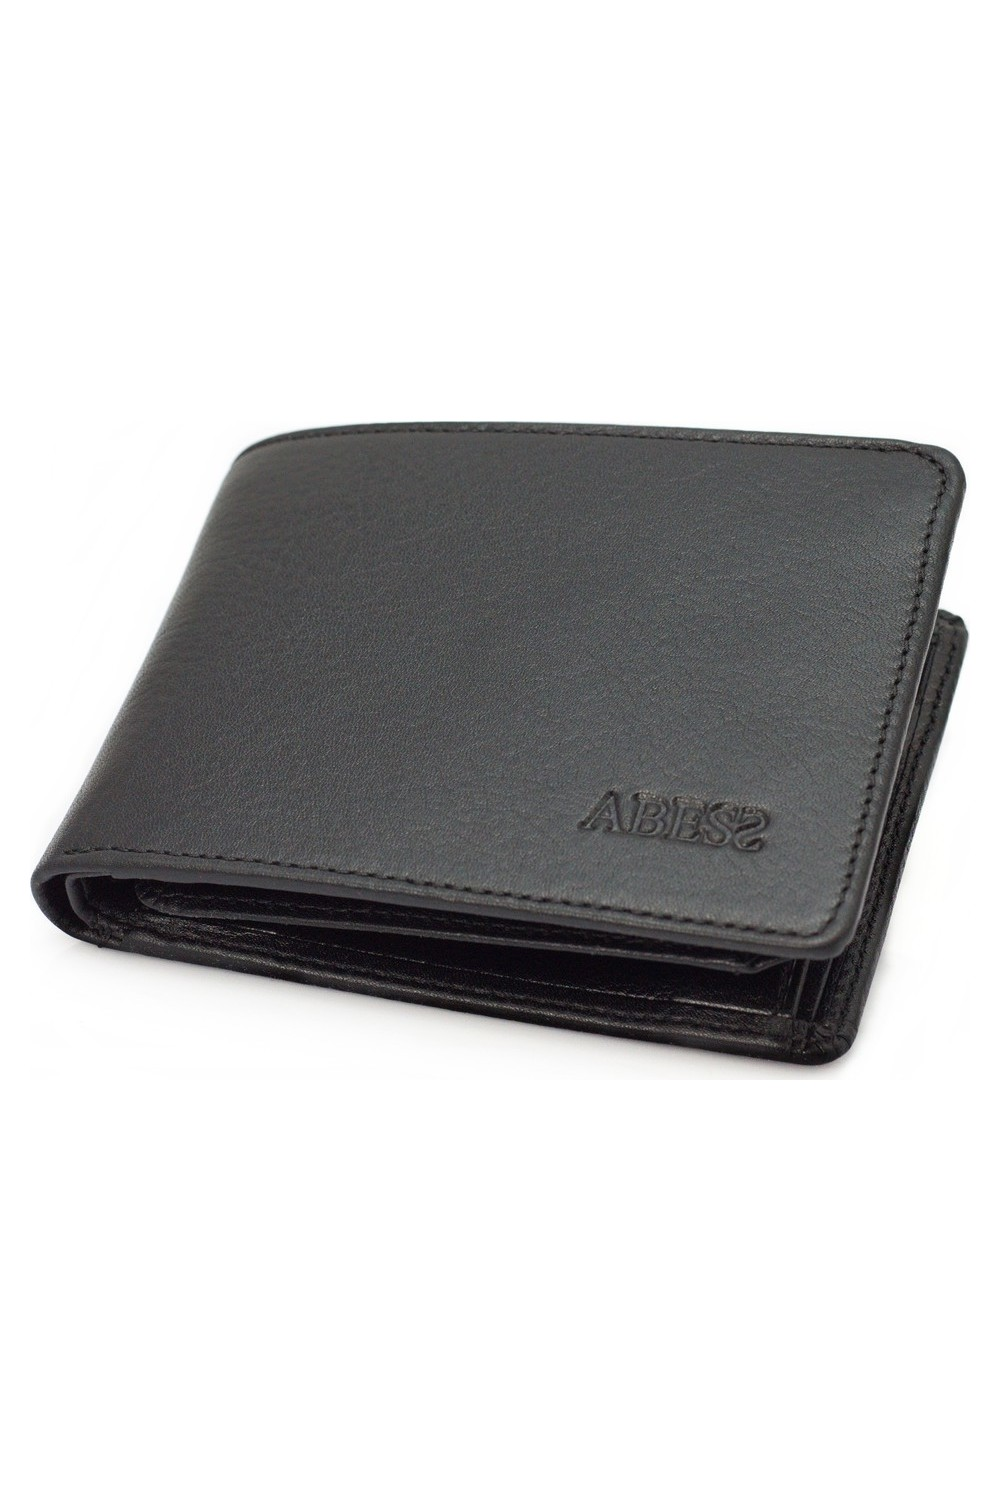 Abess Genuine Leather Men's Wallet